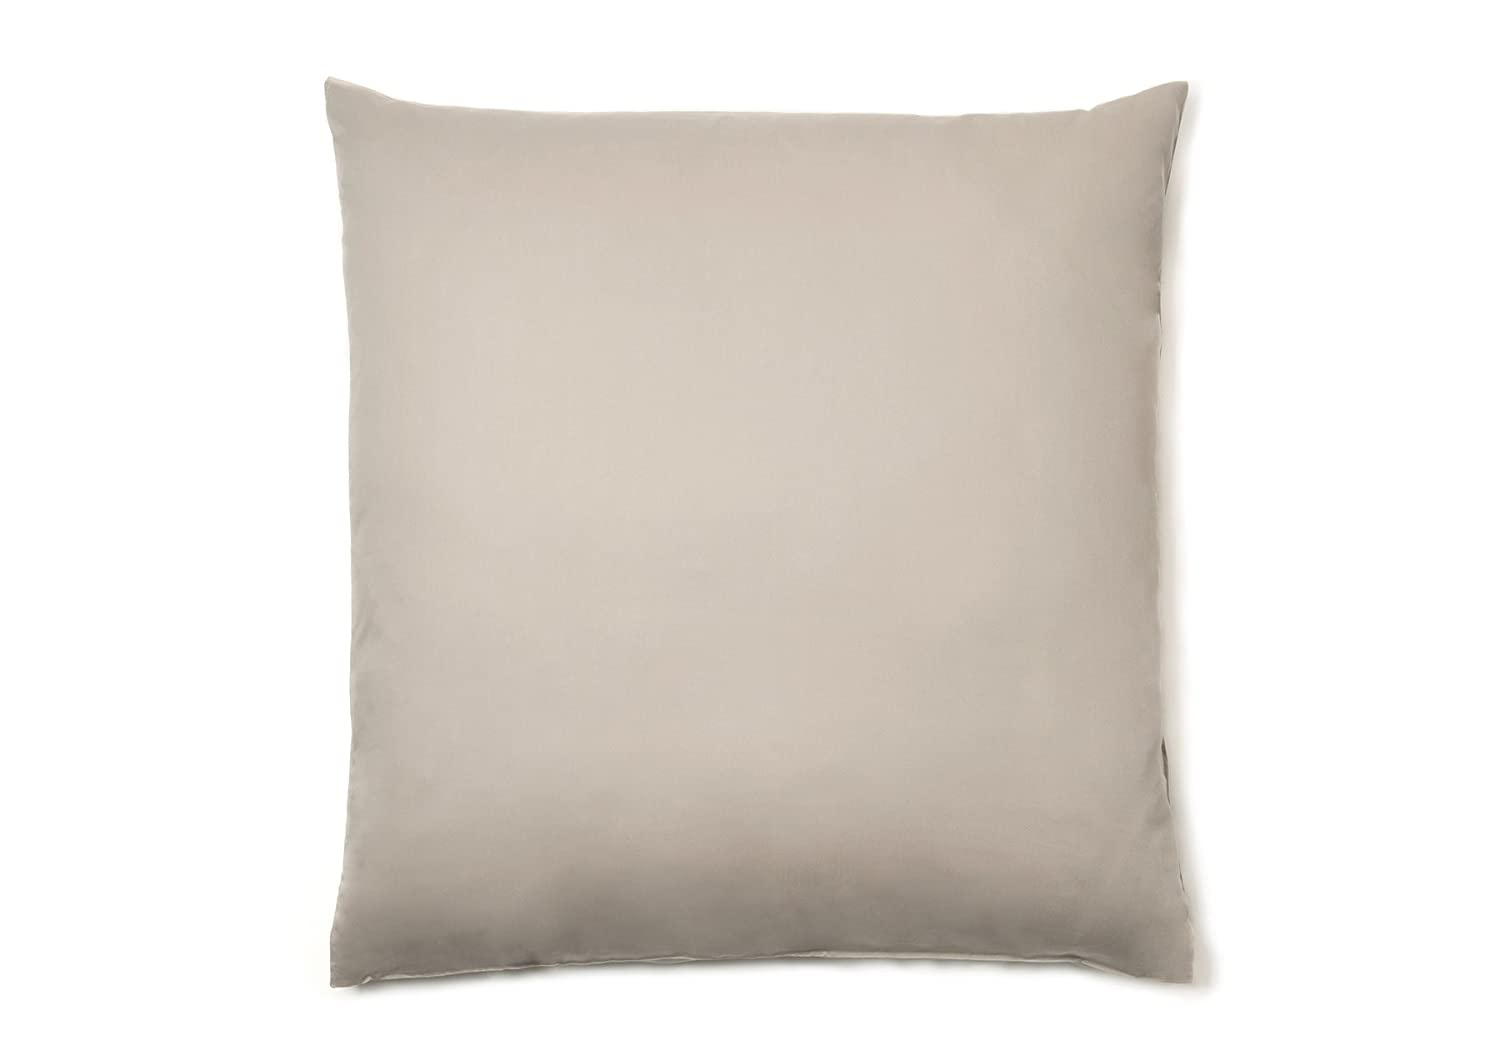 Amazon.com: Organic pillow casa cushion cover VIVO nobel ...